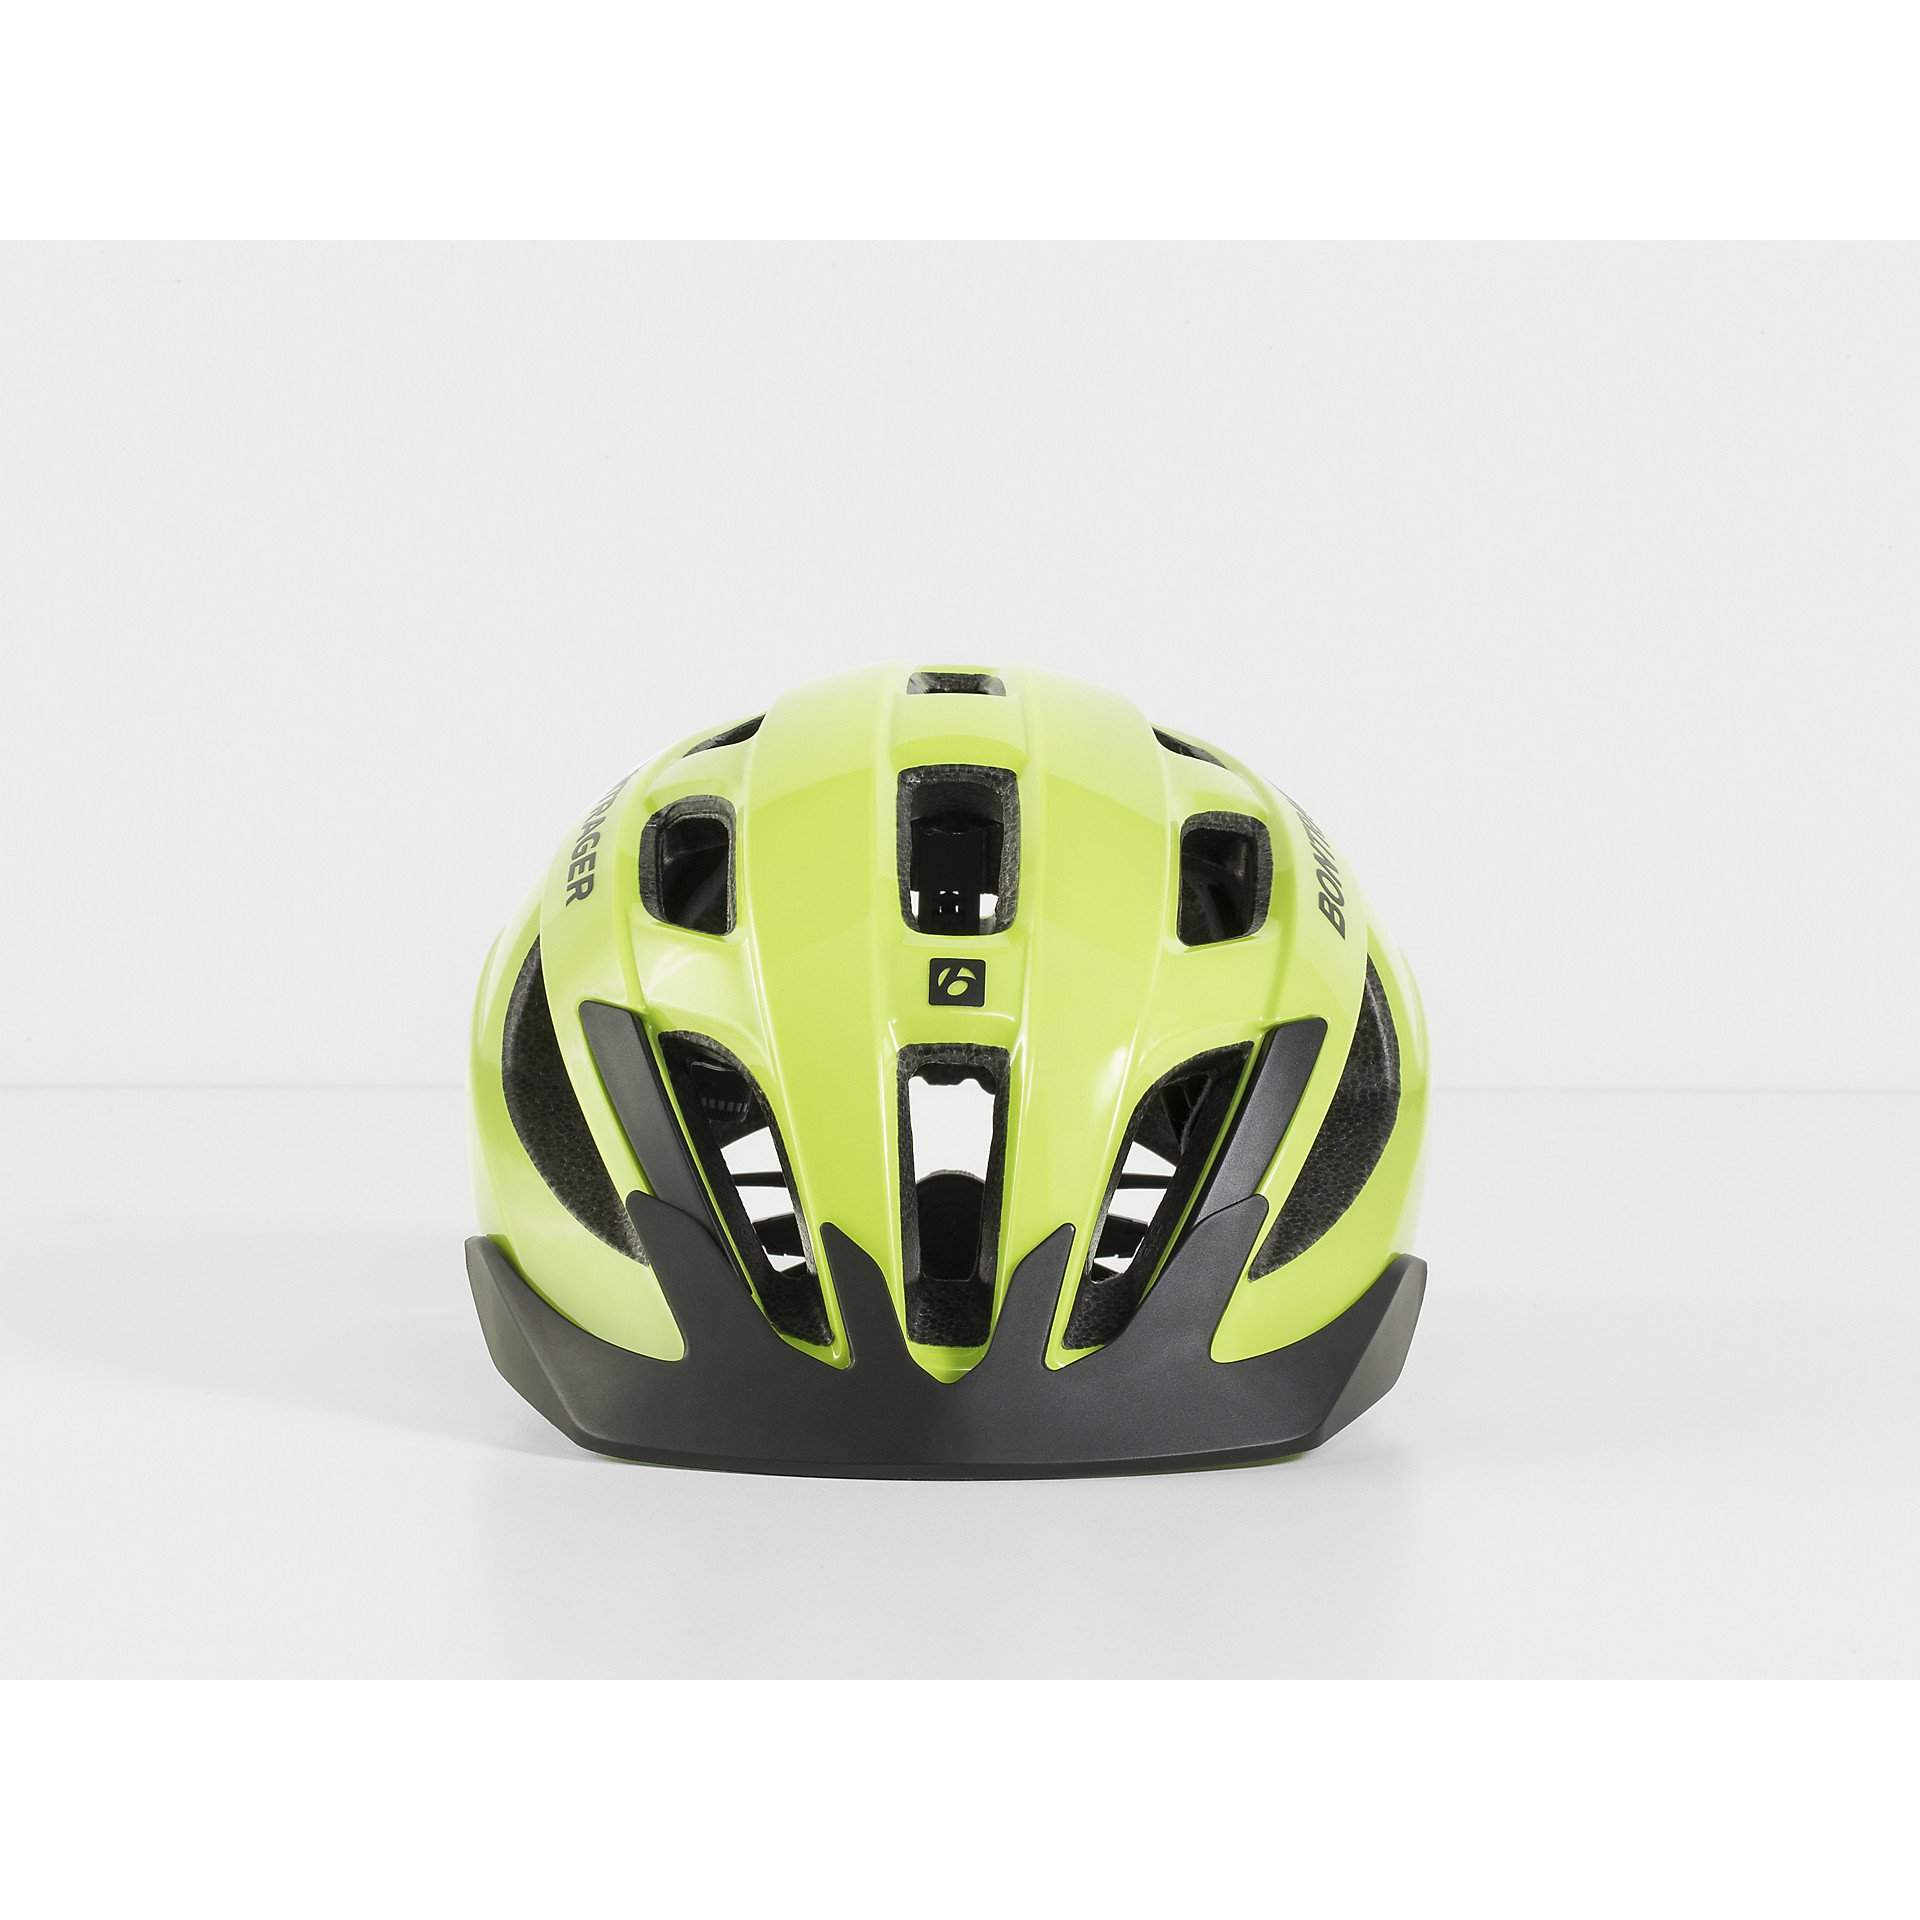 KASK ROWEROWY BONTRAGER SOLSTICE VISIBLE YELLOW Z PRZODU